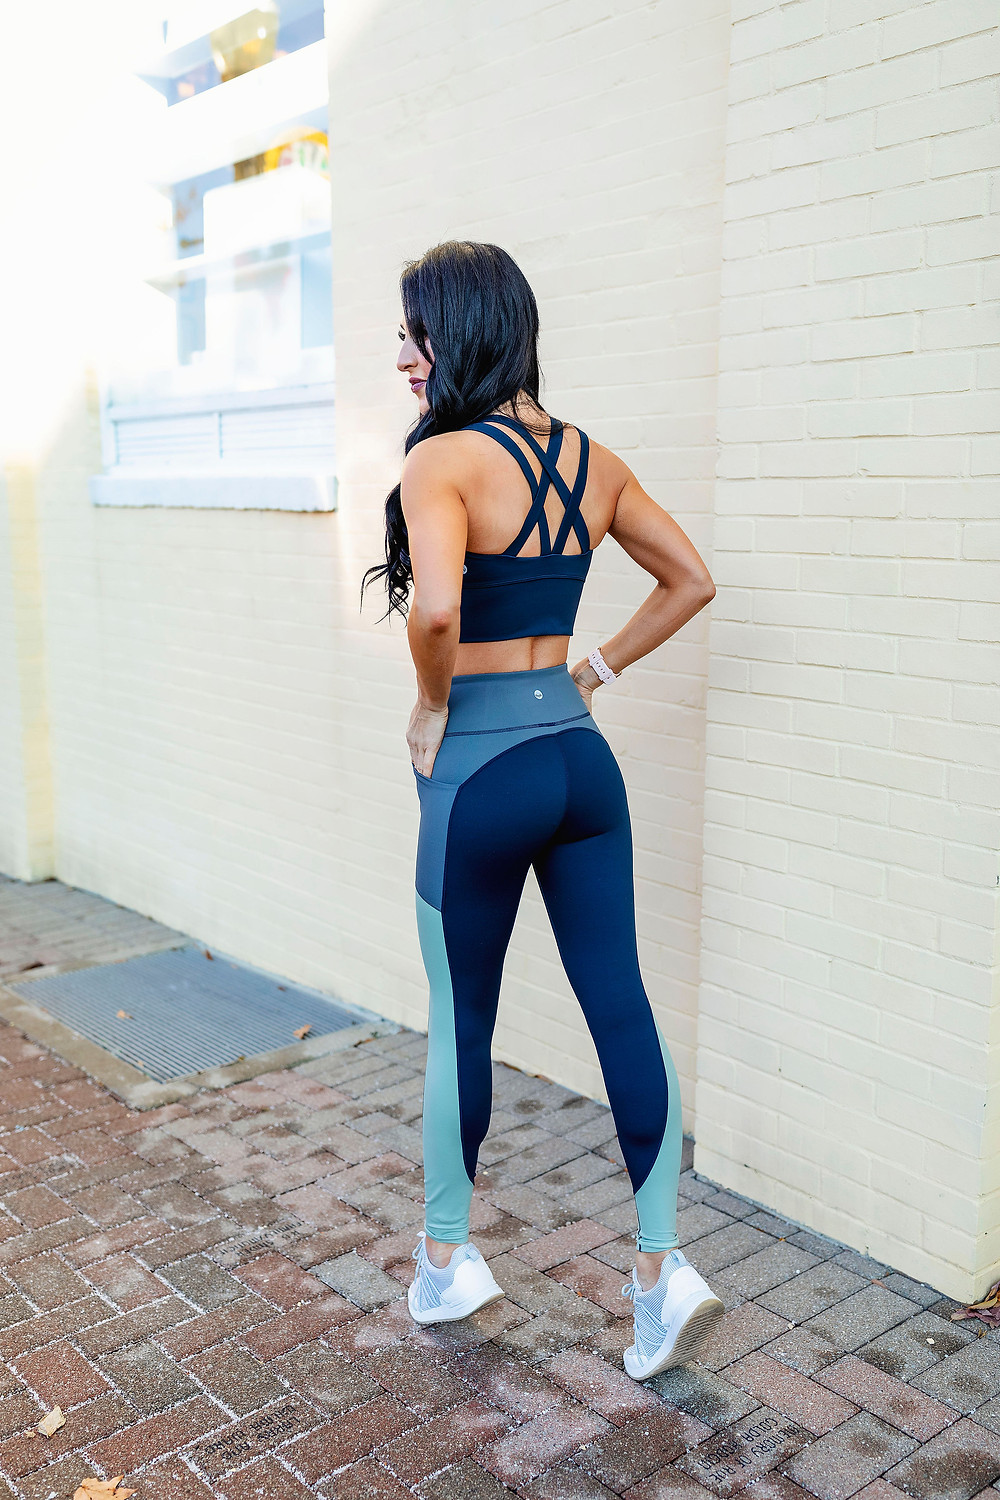 workout wear, athletic wear, crop top, sports bra, high waister leggings, fitness blogger